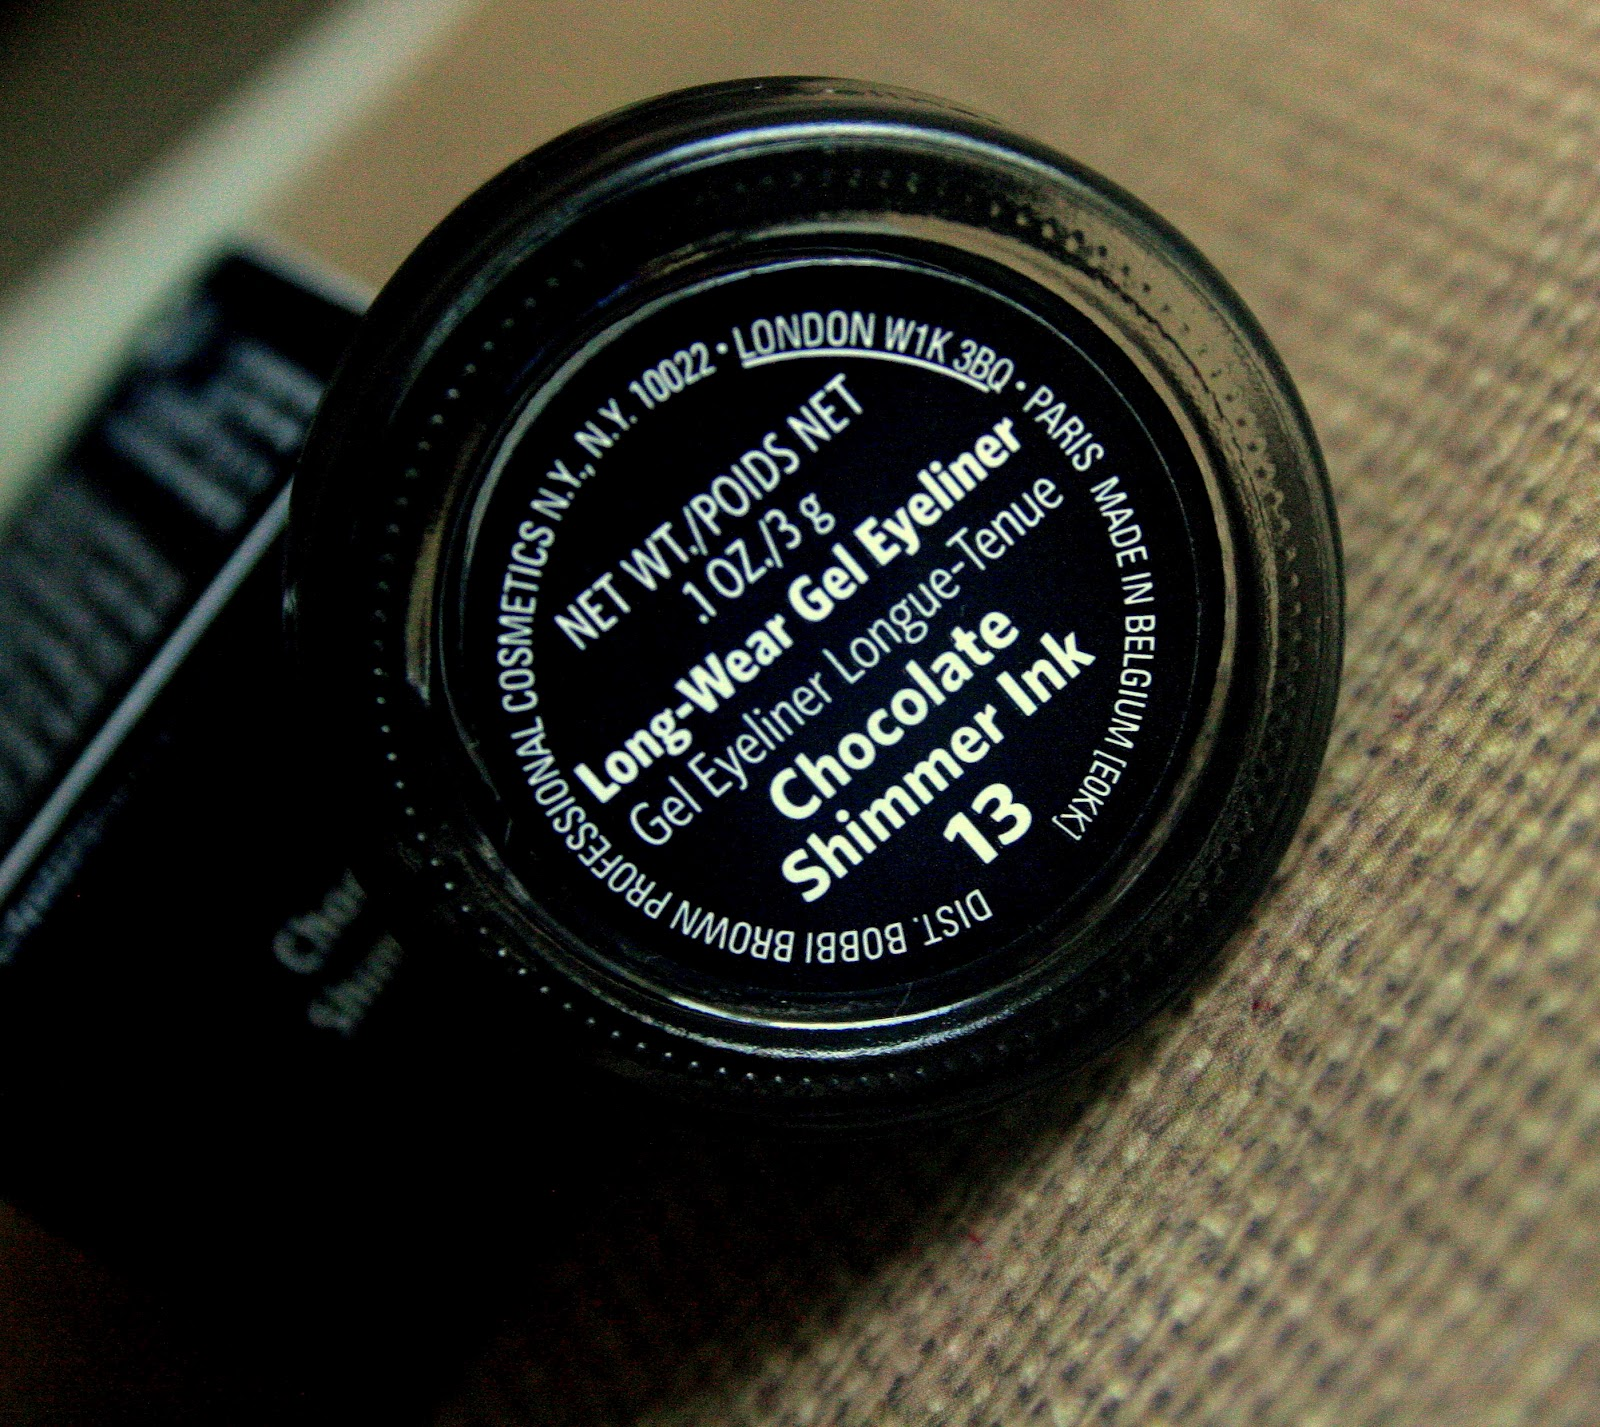 Bobbi Brown Long-Wear Gel Eyeliner in Chocolate Shimmer Ink